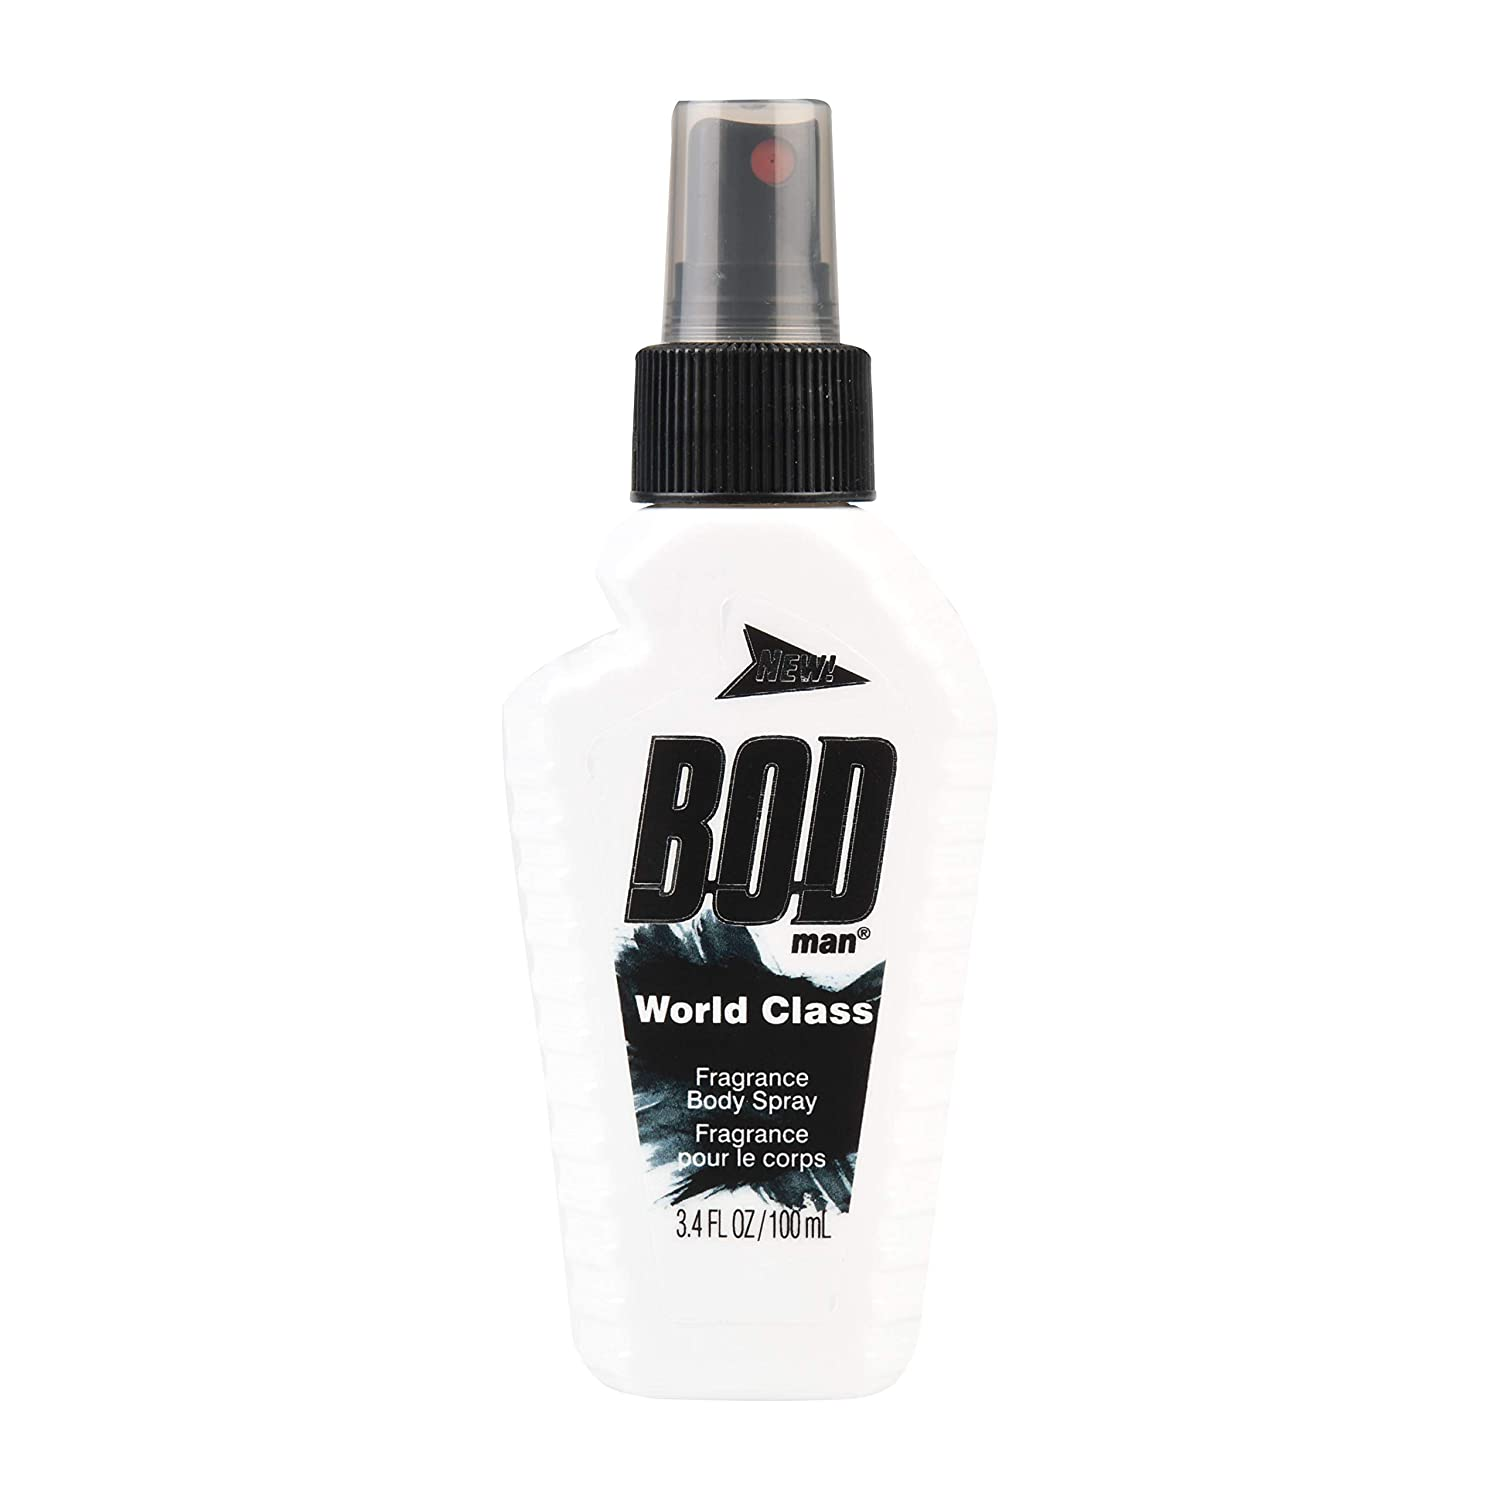 Bod Man (1) Bottle Fragrance Body Spray - World Class Scent - Net Wt. 3.4 fl oz